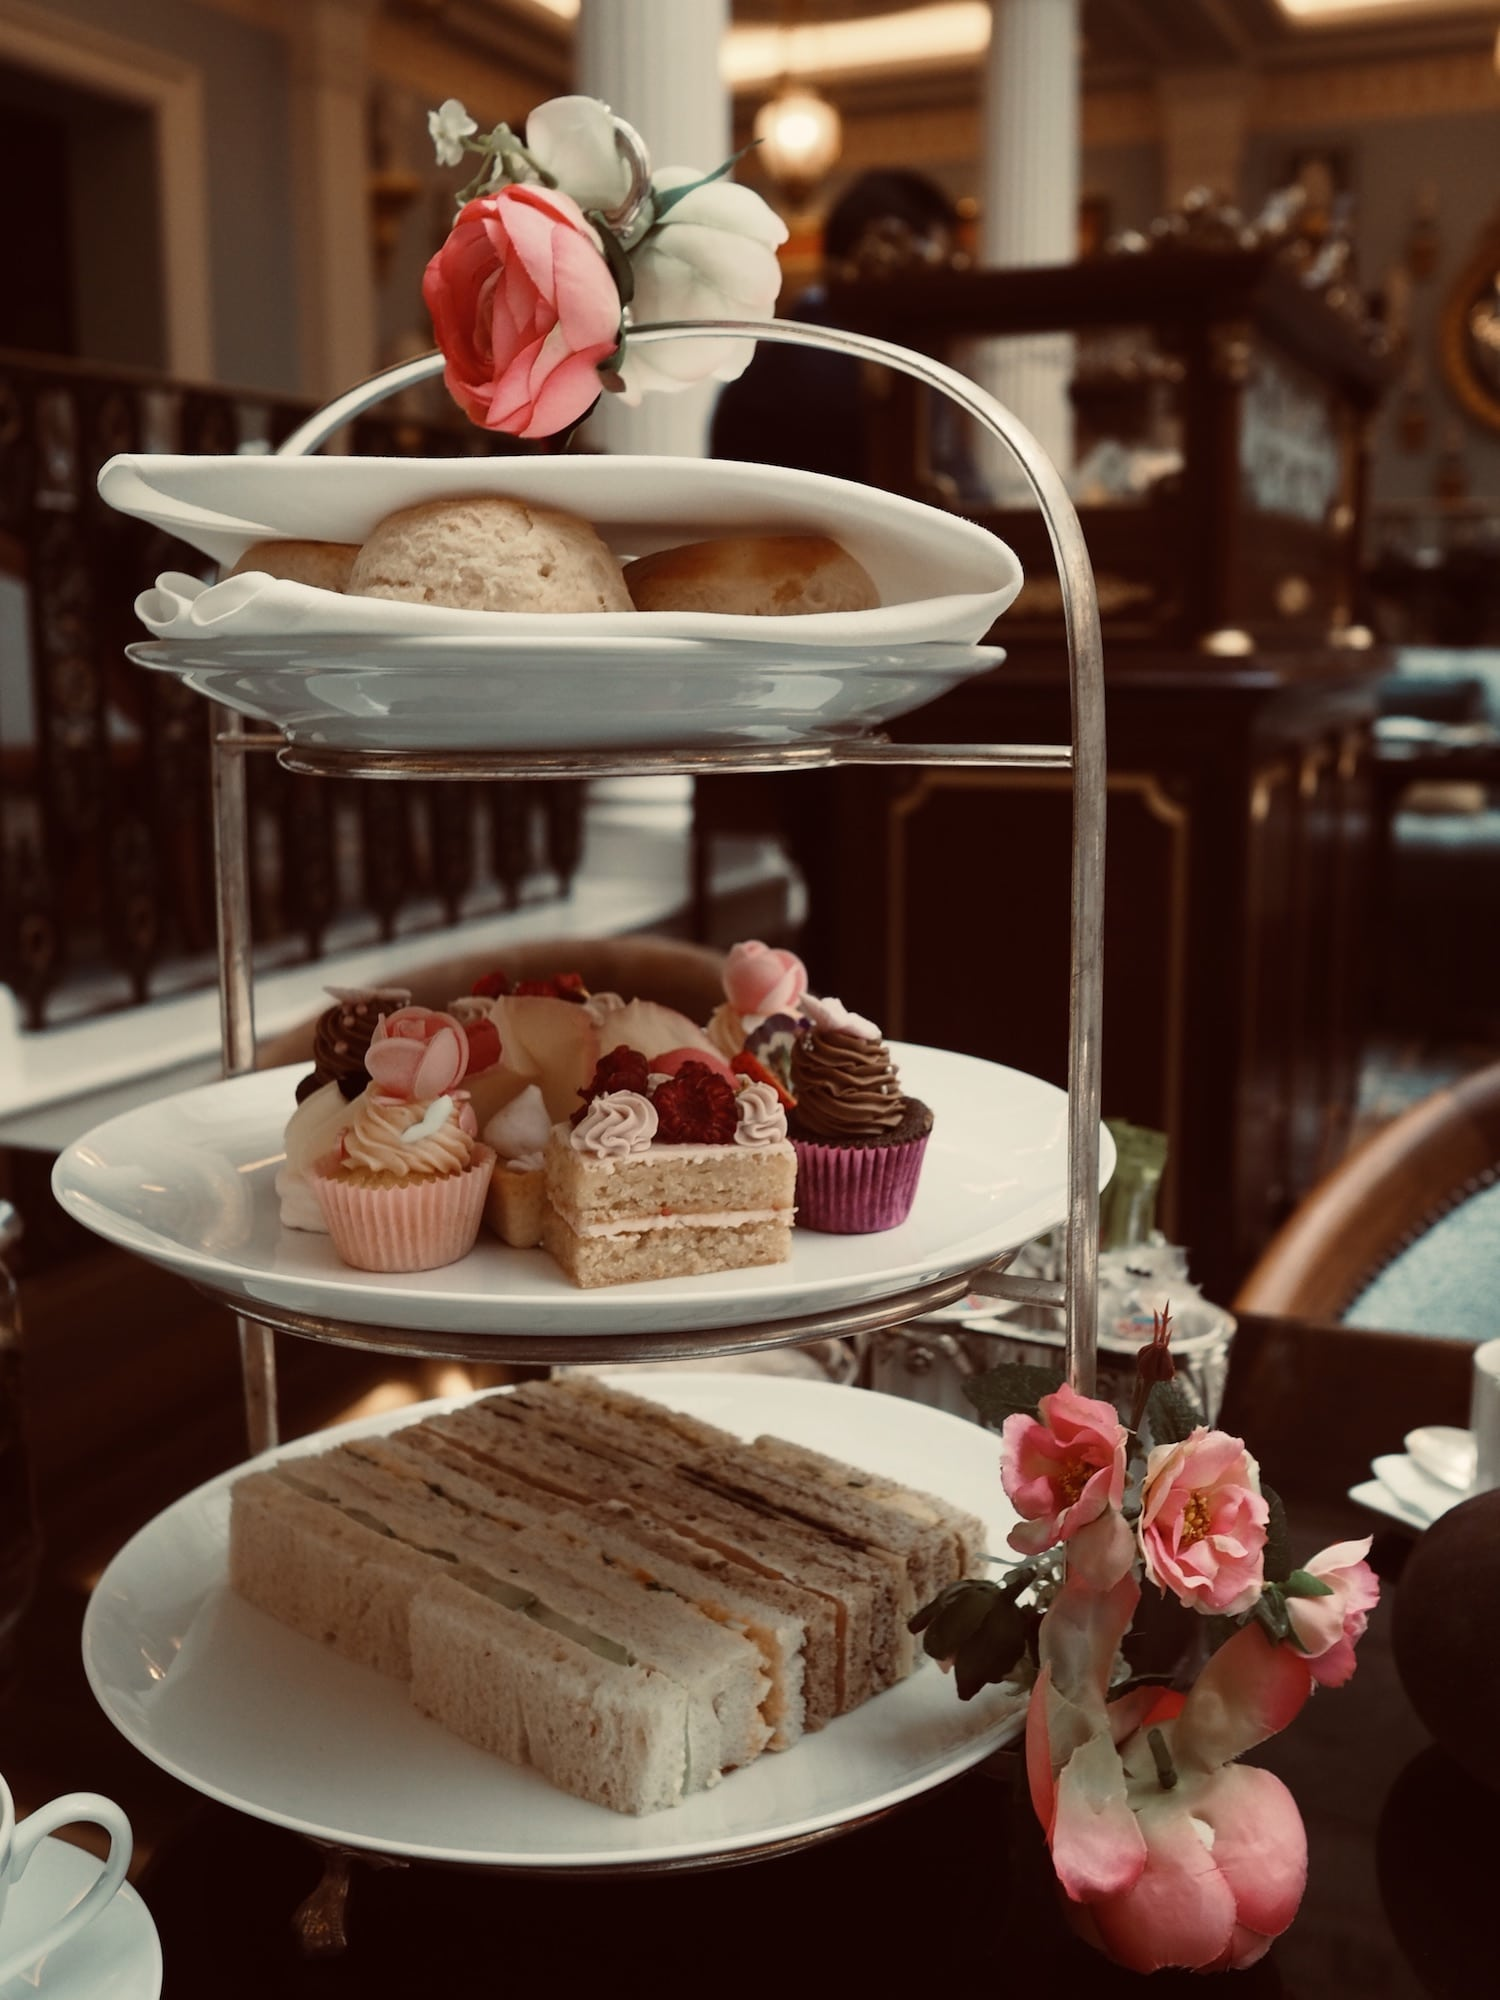 Afternoon tea at Lanesborough